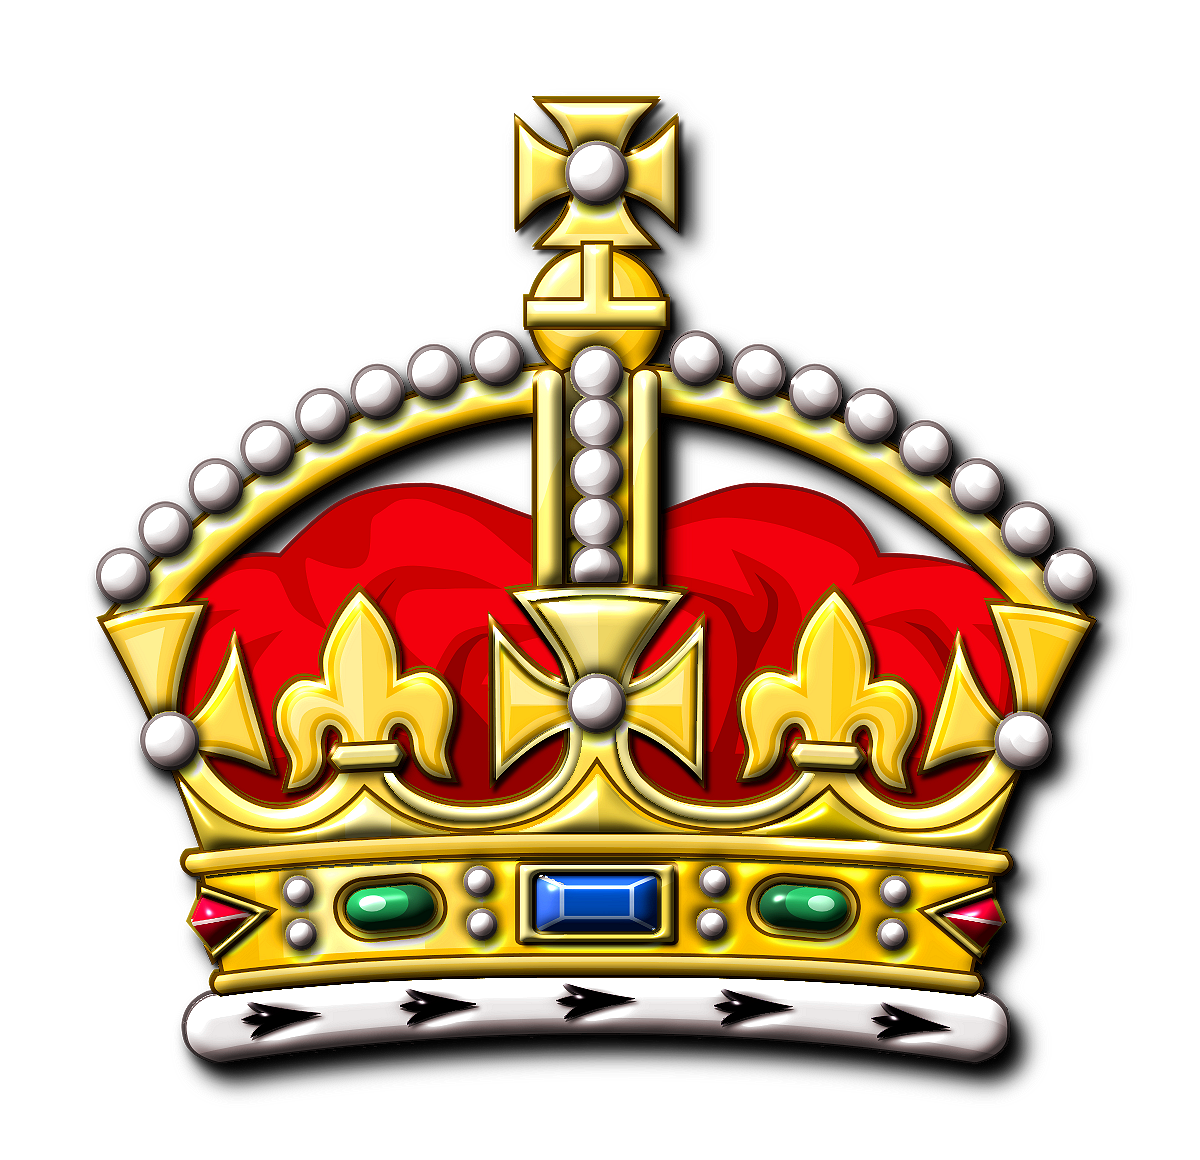 kings crown logo clipart best